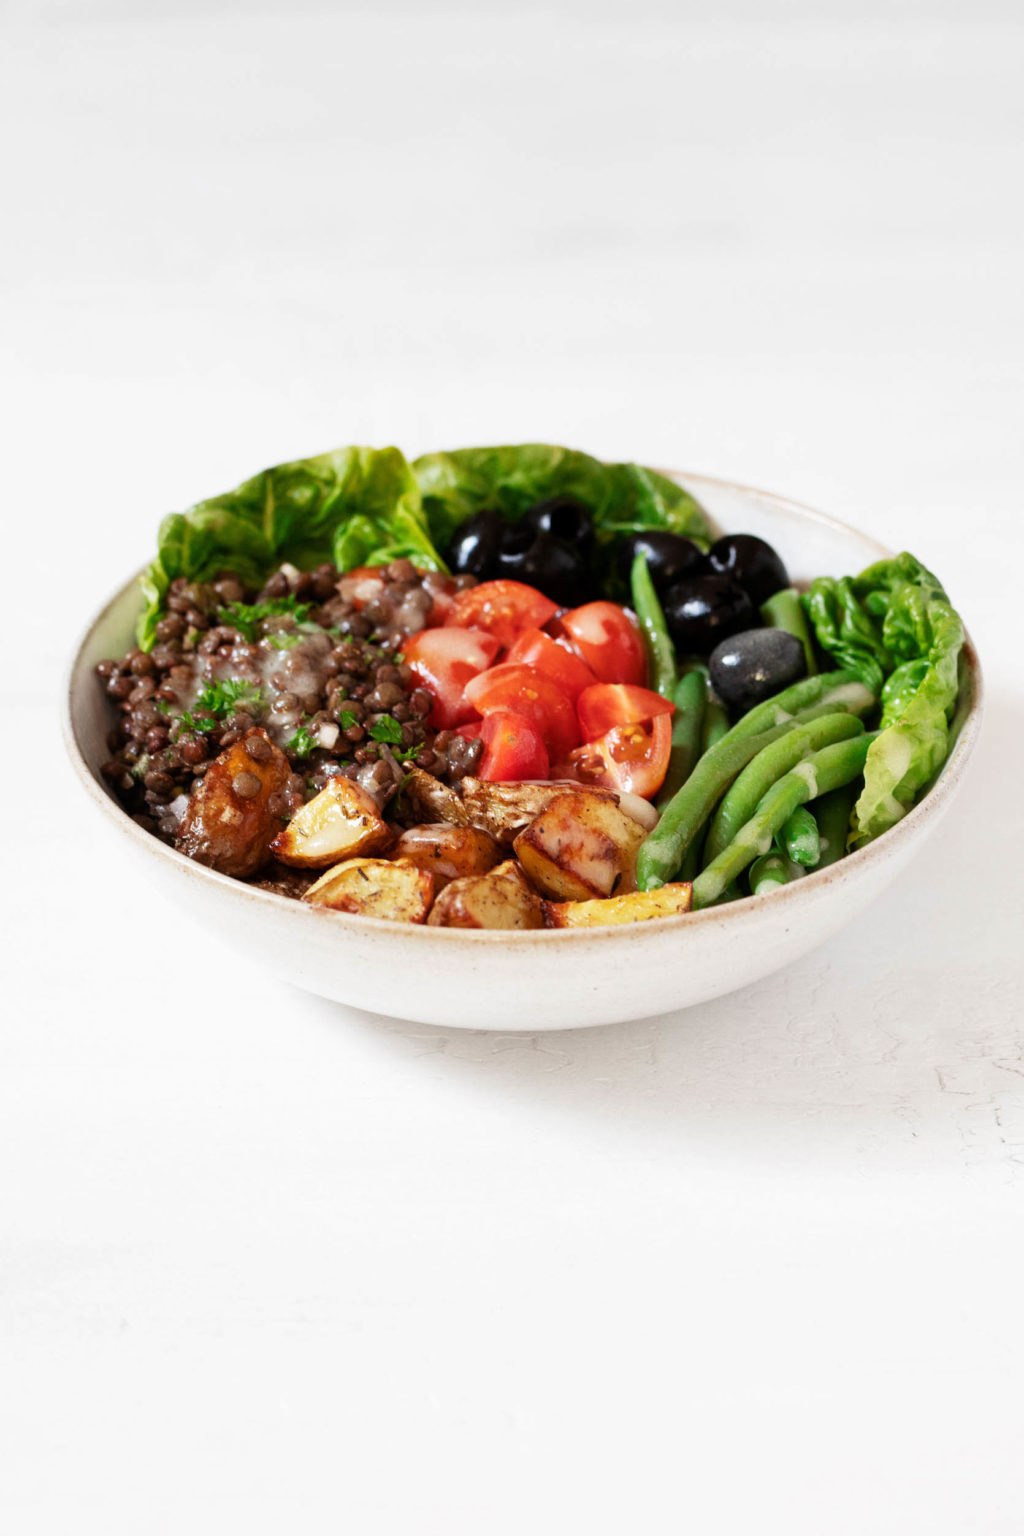 An angled photograph of a round bowl of vegan lentil Niçoise salad, which is resting on a clean white surface.